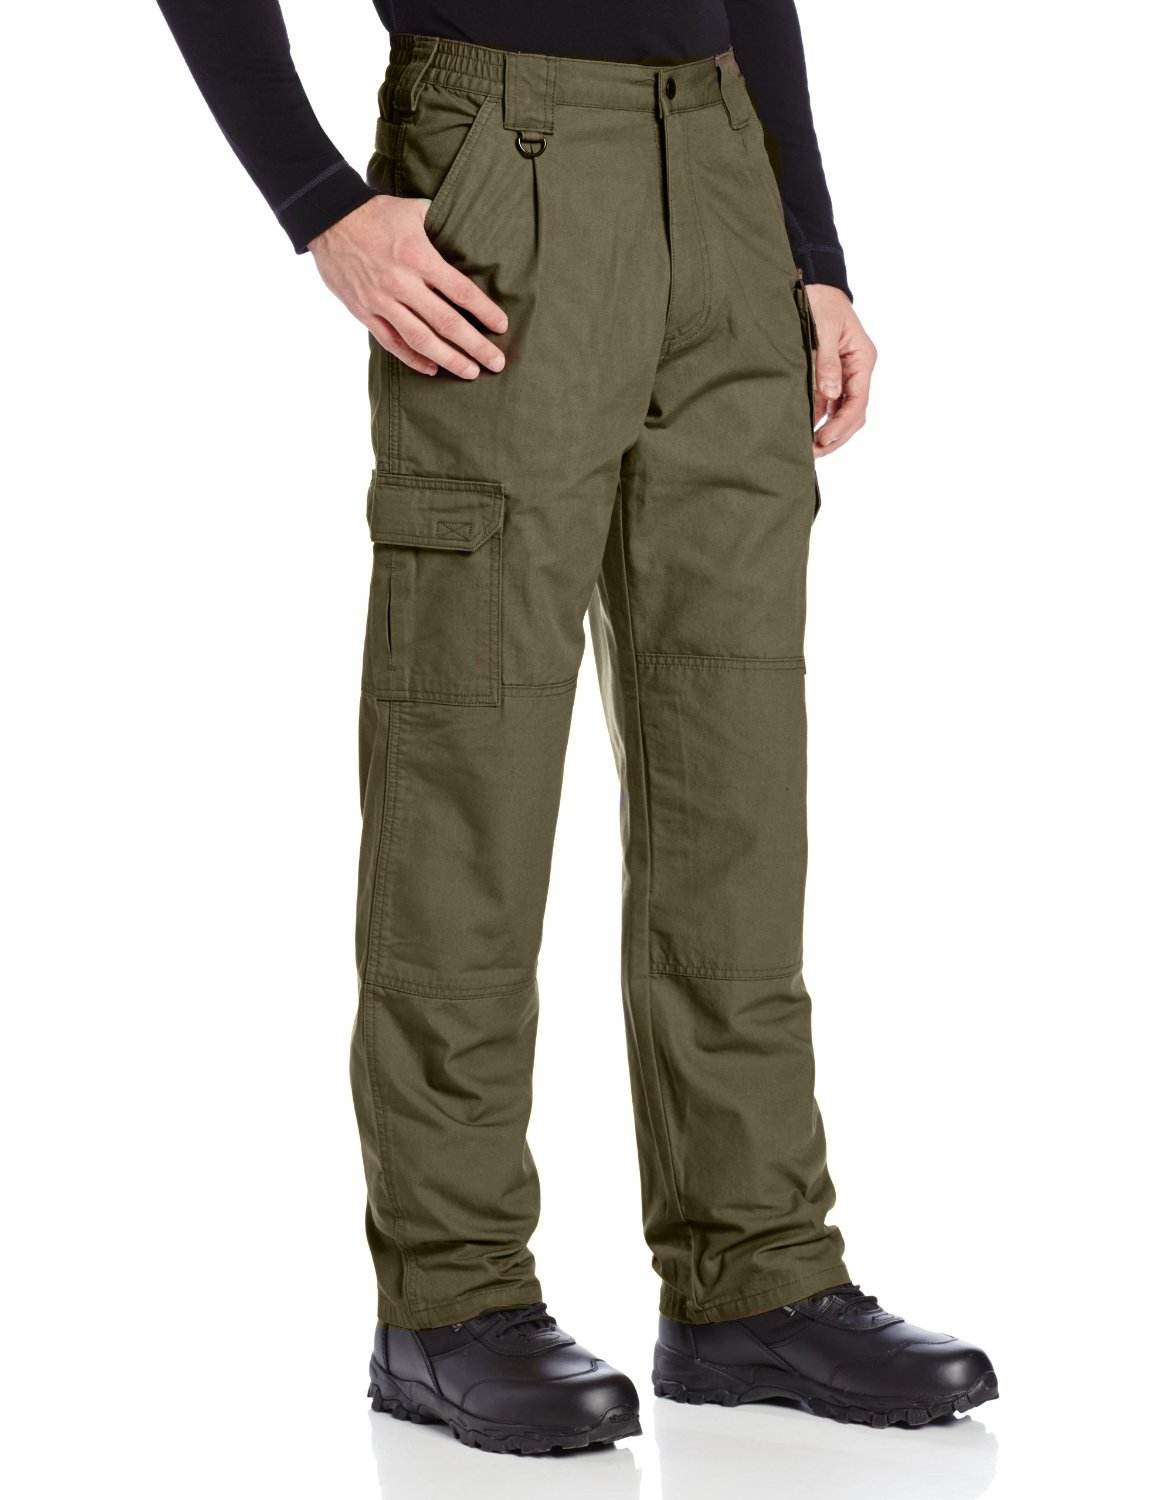 5.11 Tactical Pants,Tundra,38Wx36L